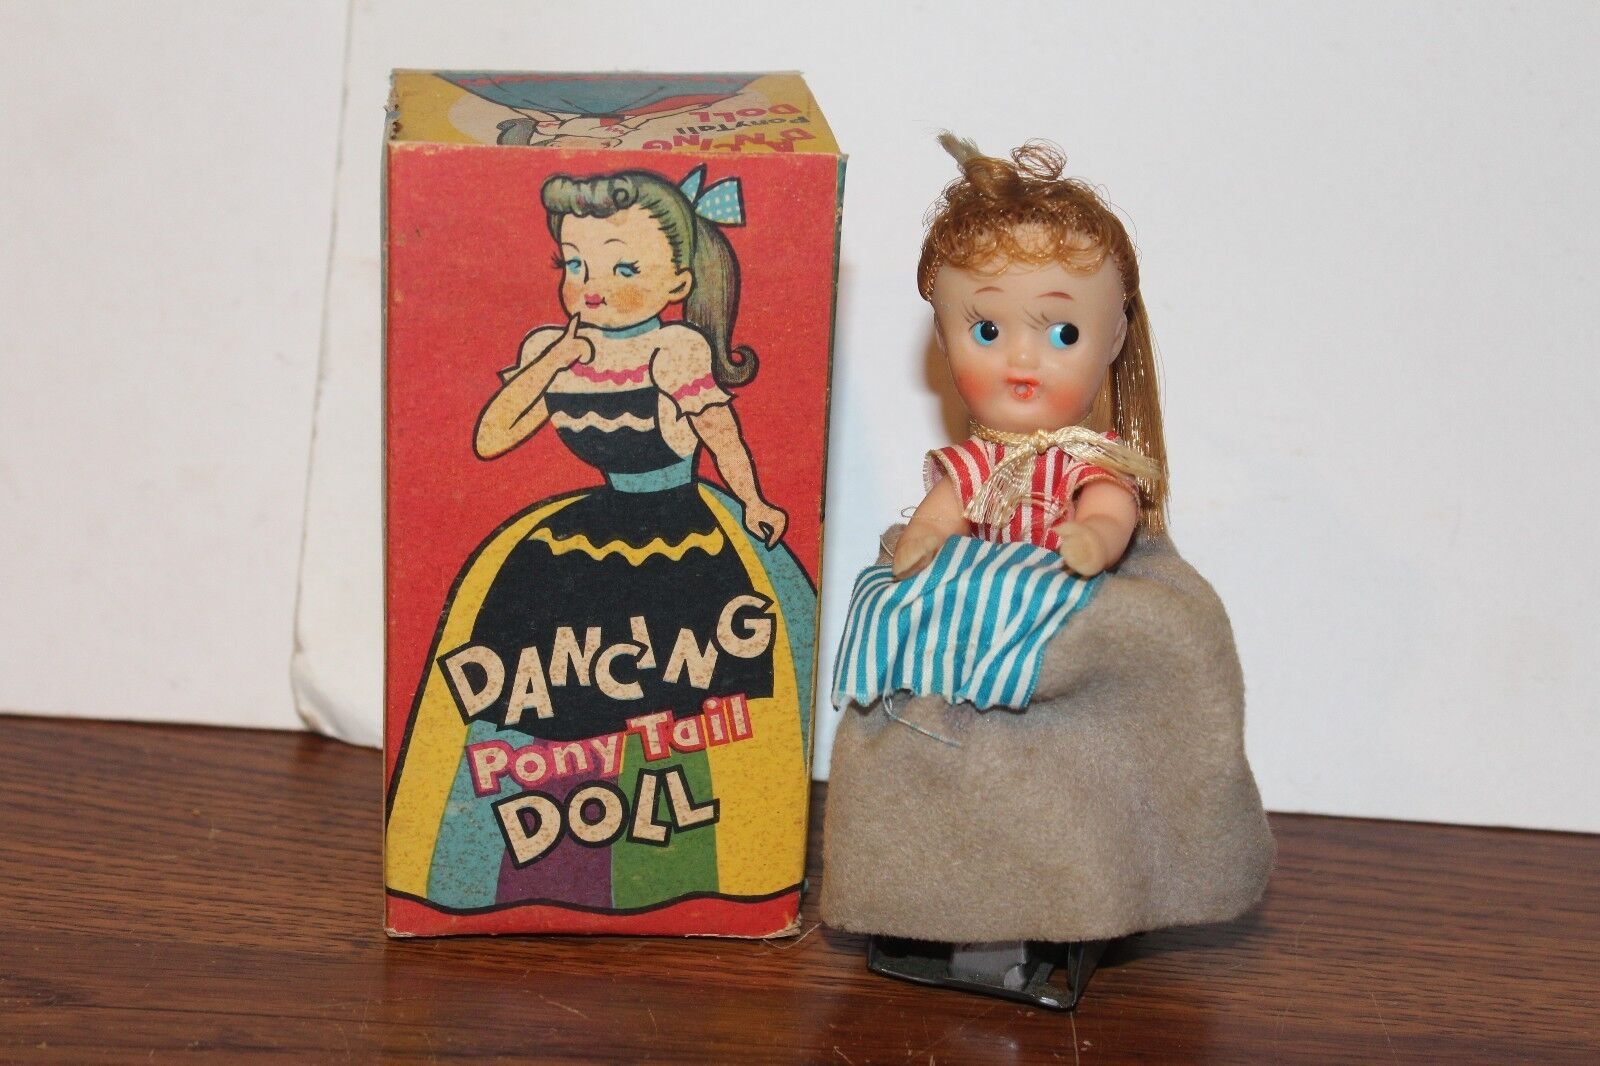 NICE VINTAGE WIND UP  DANCING PONY TAIL GIRL in BOX